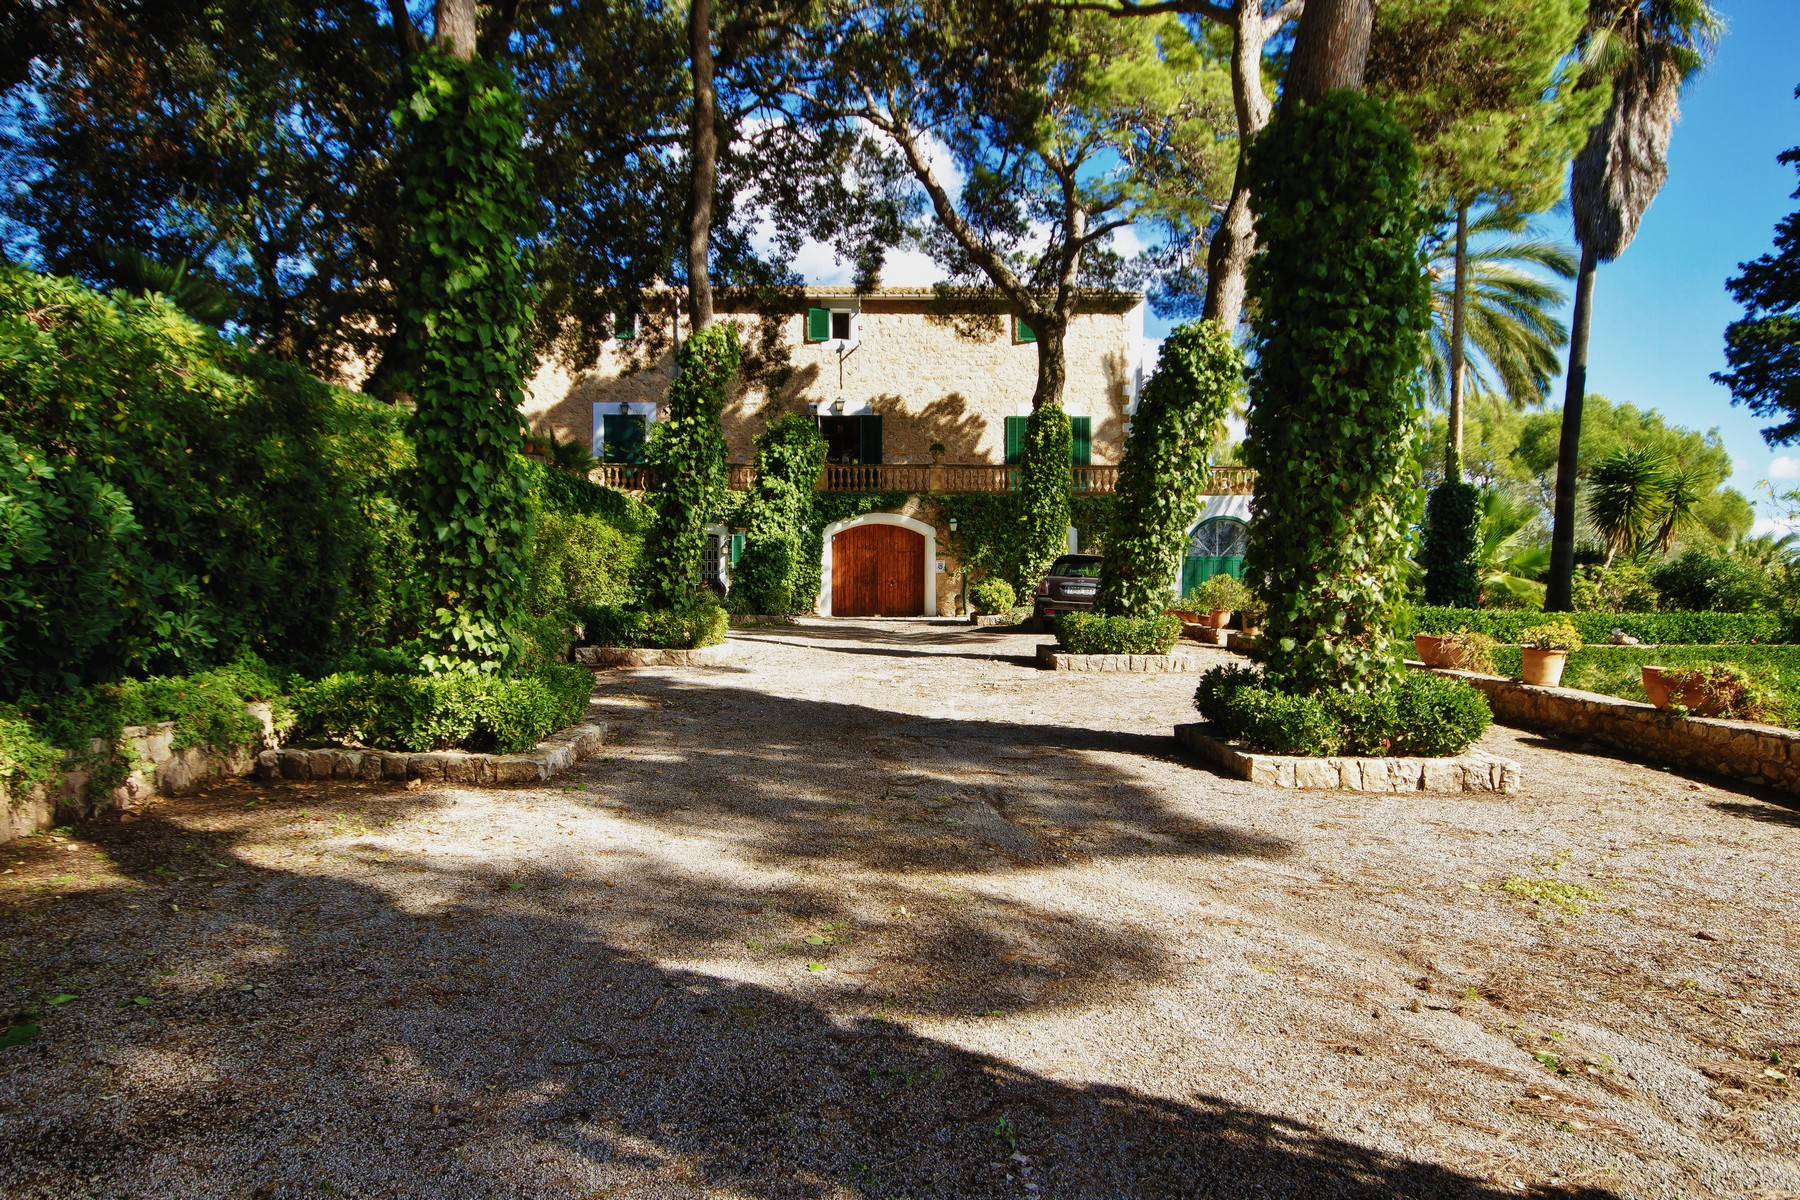 Other Residential for Sale at Country Estate in Manacor Manacor, Mallorca, 07530 Spain